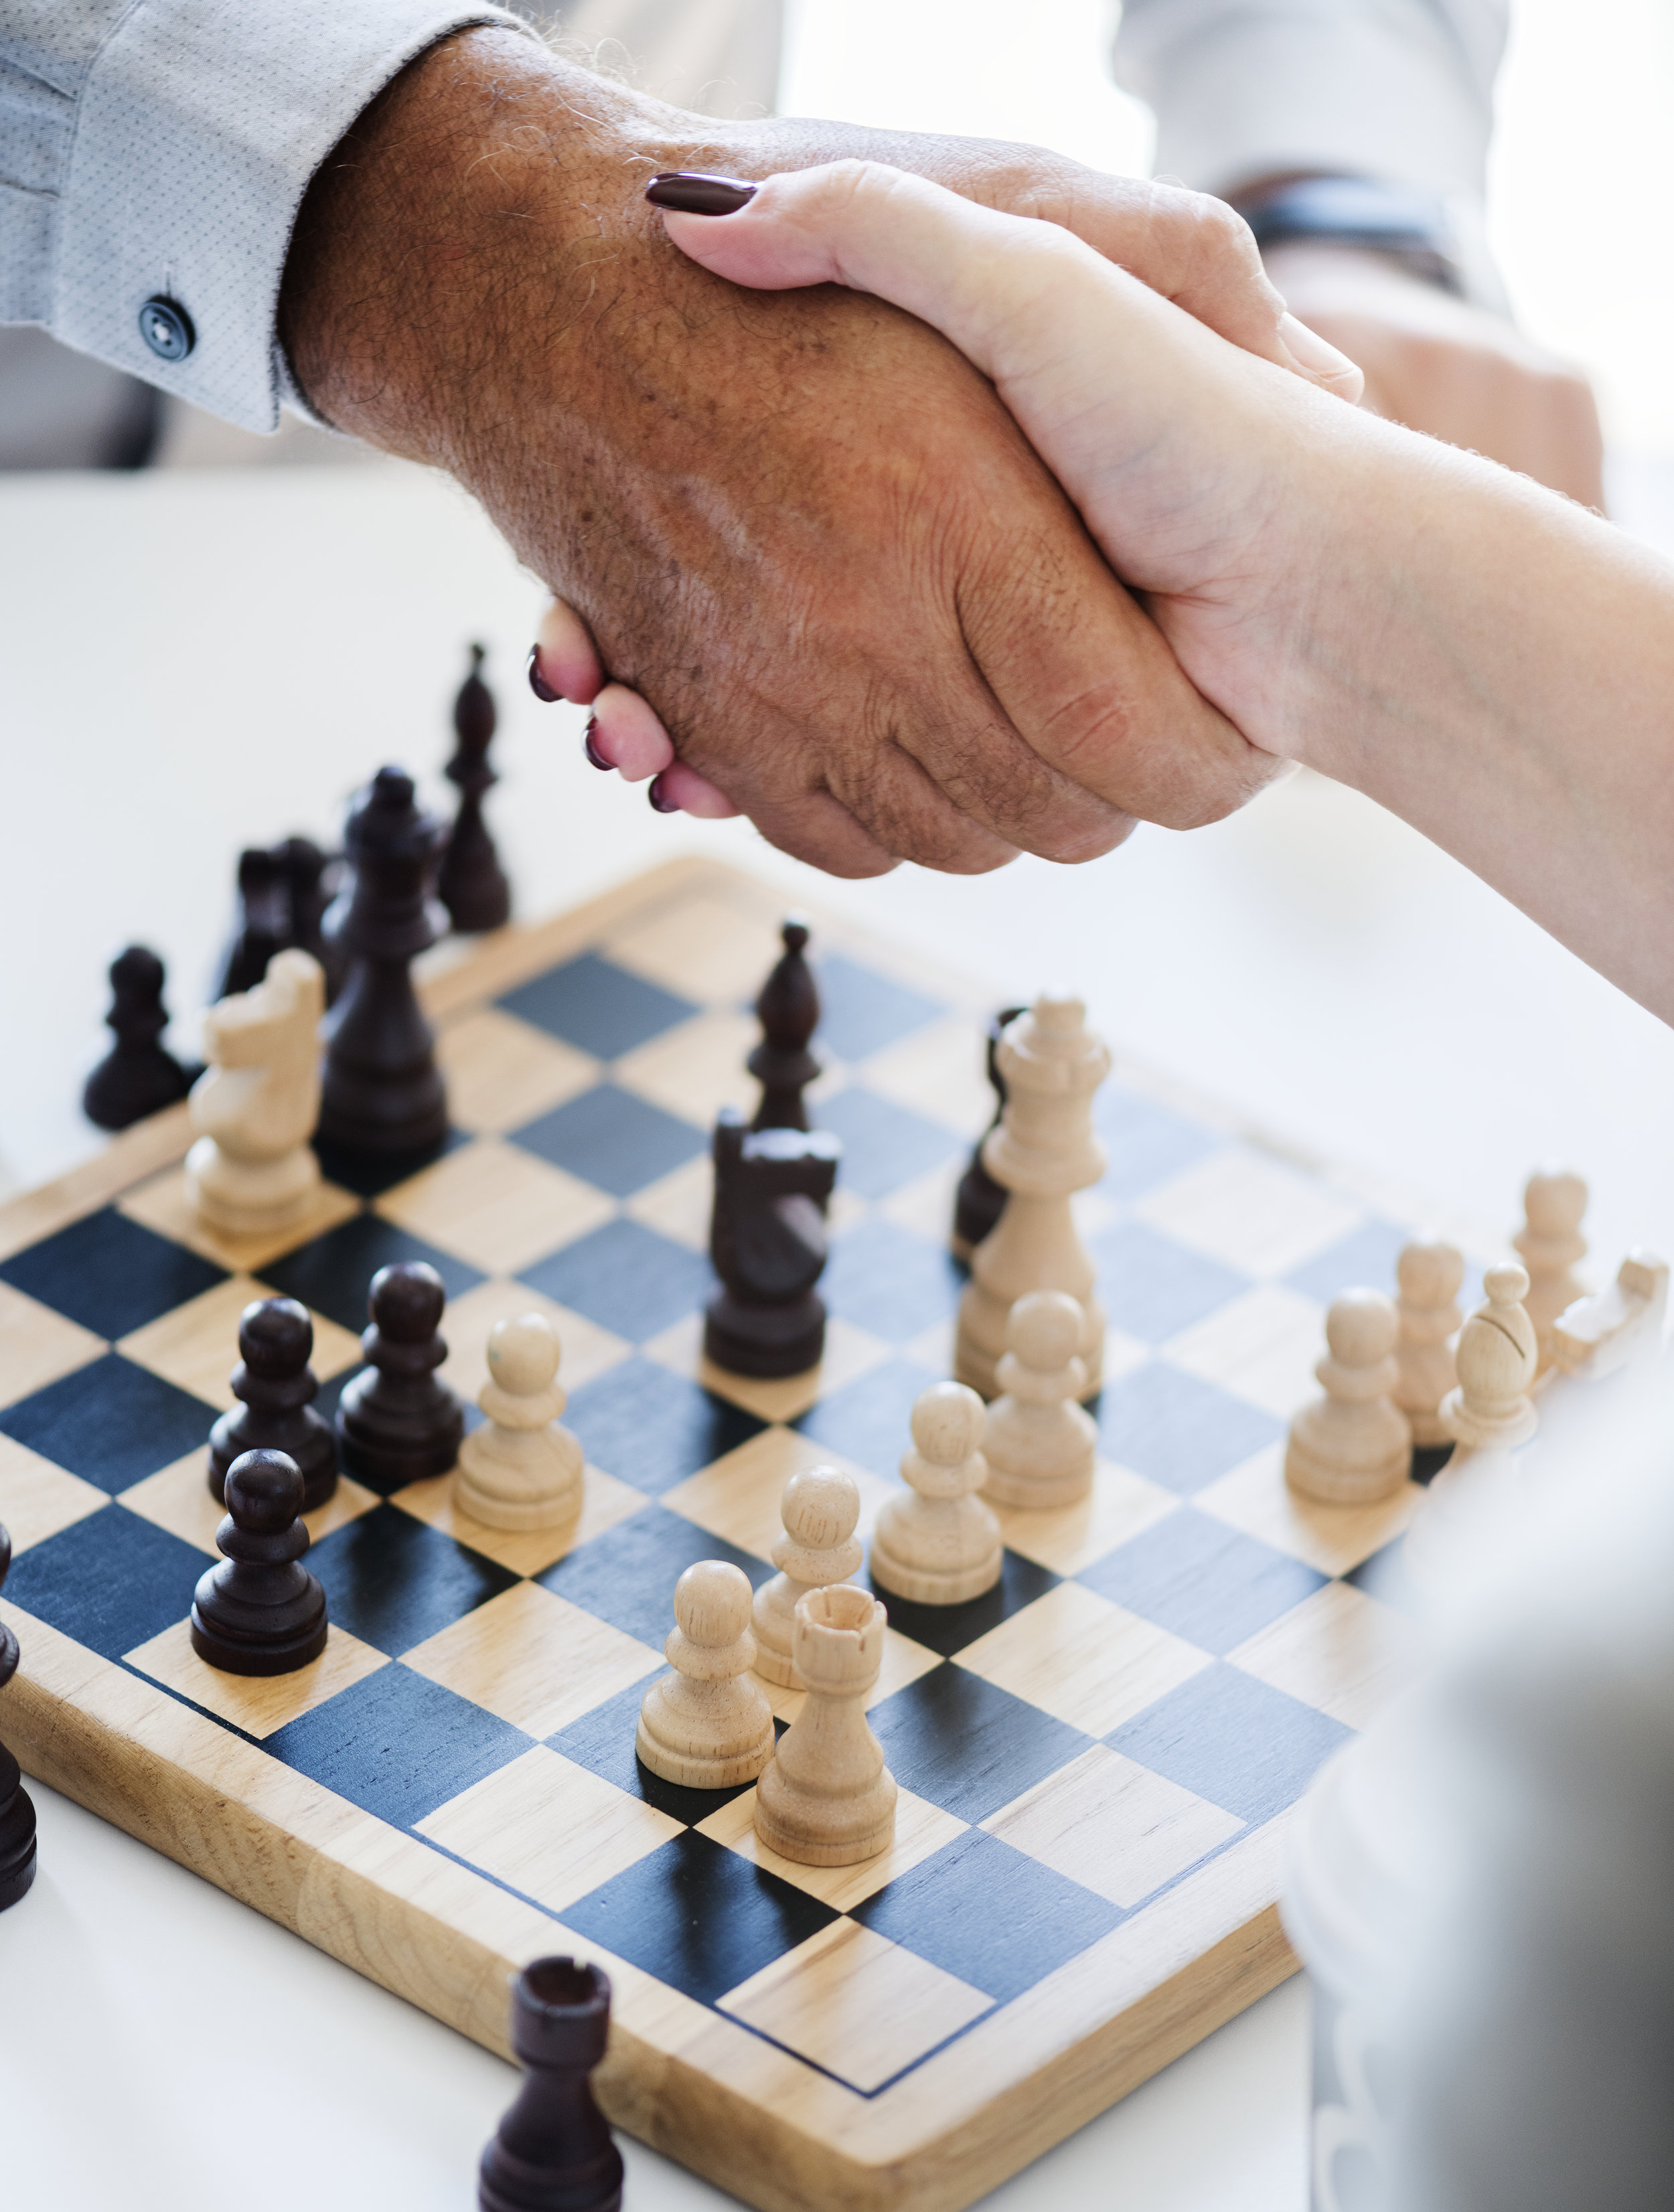 A man and a woman shaking hands over a game of chess.